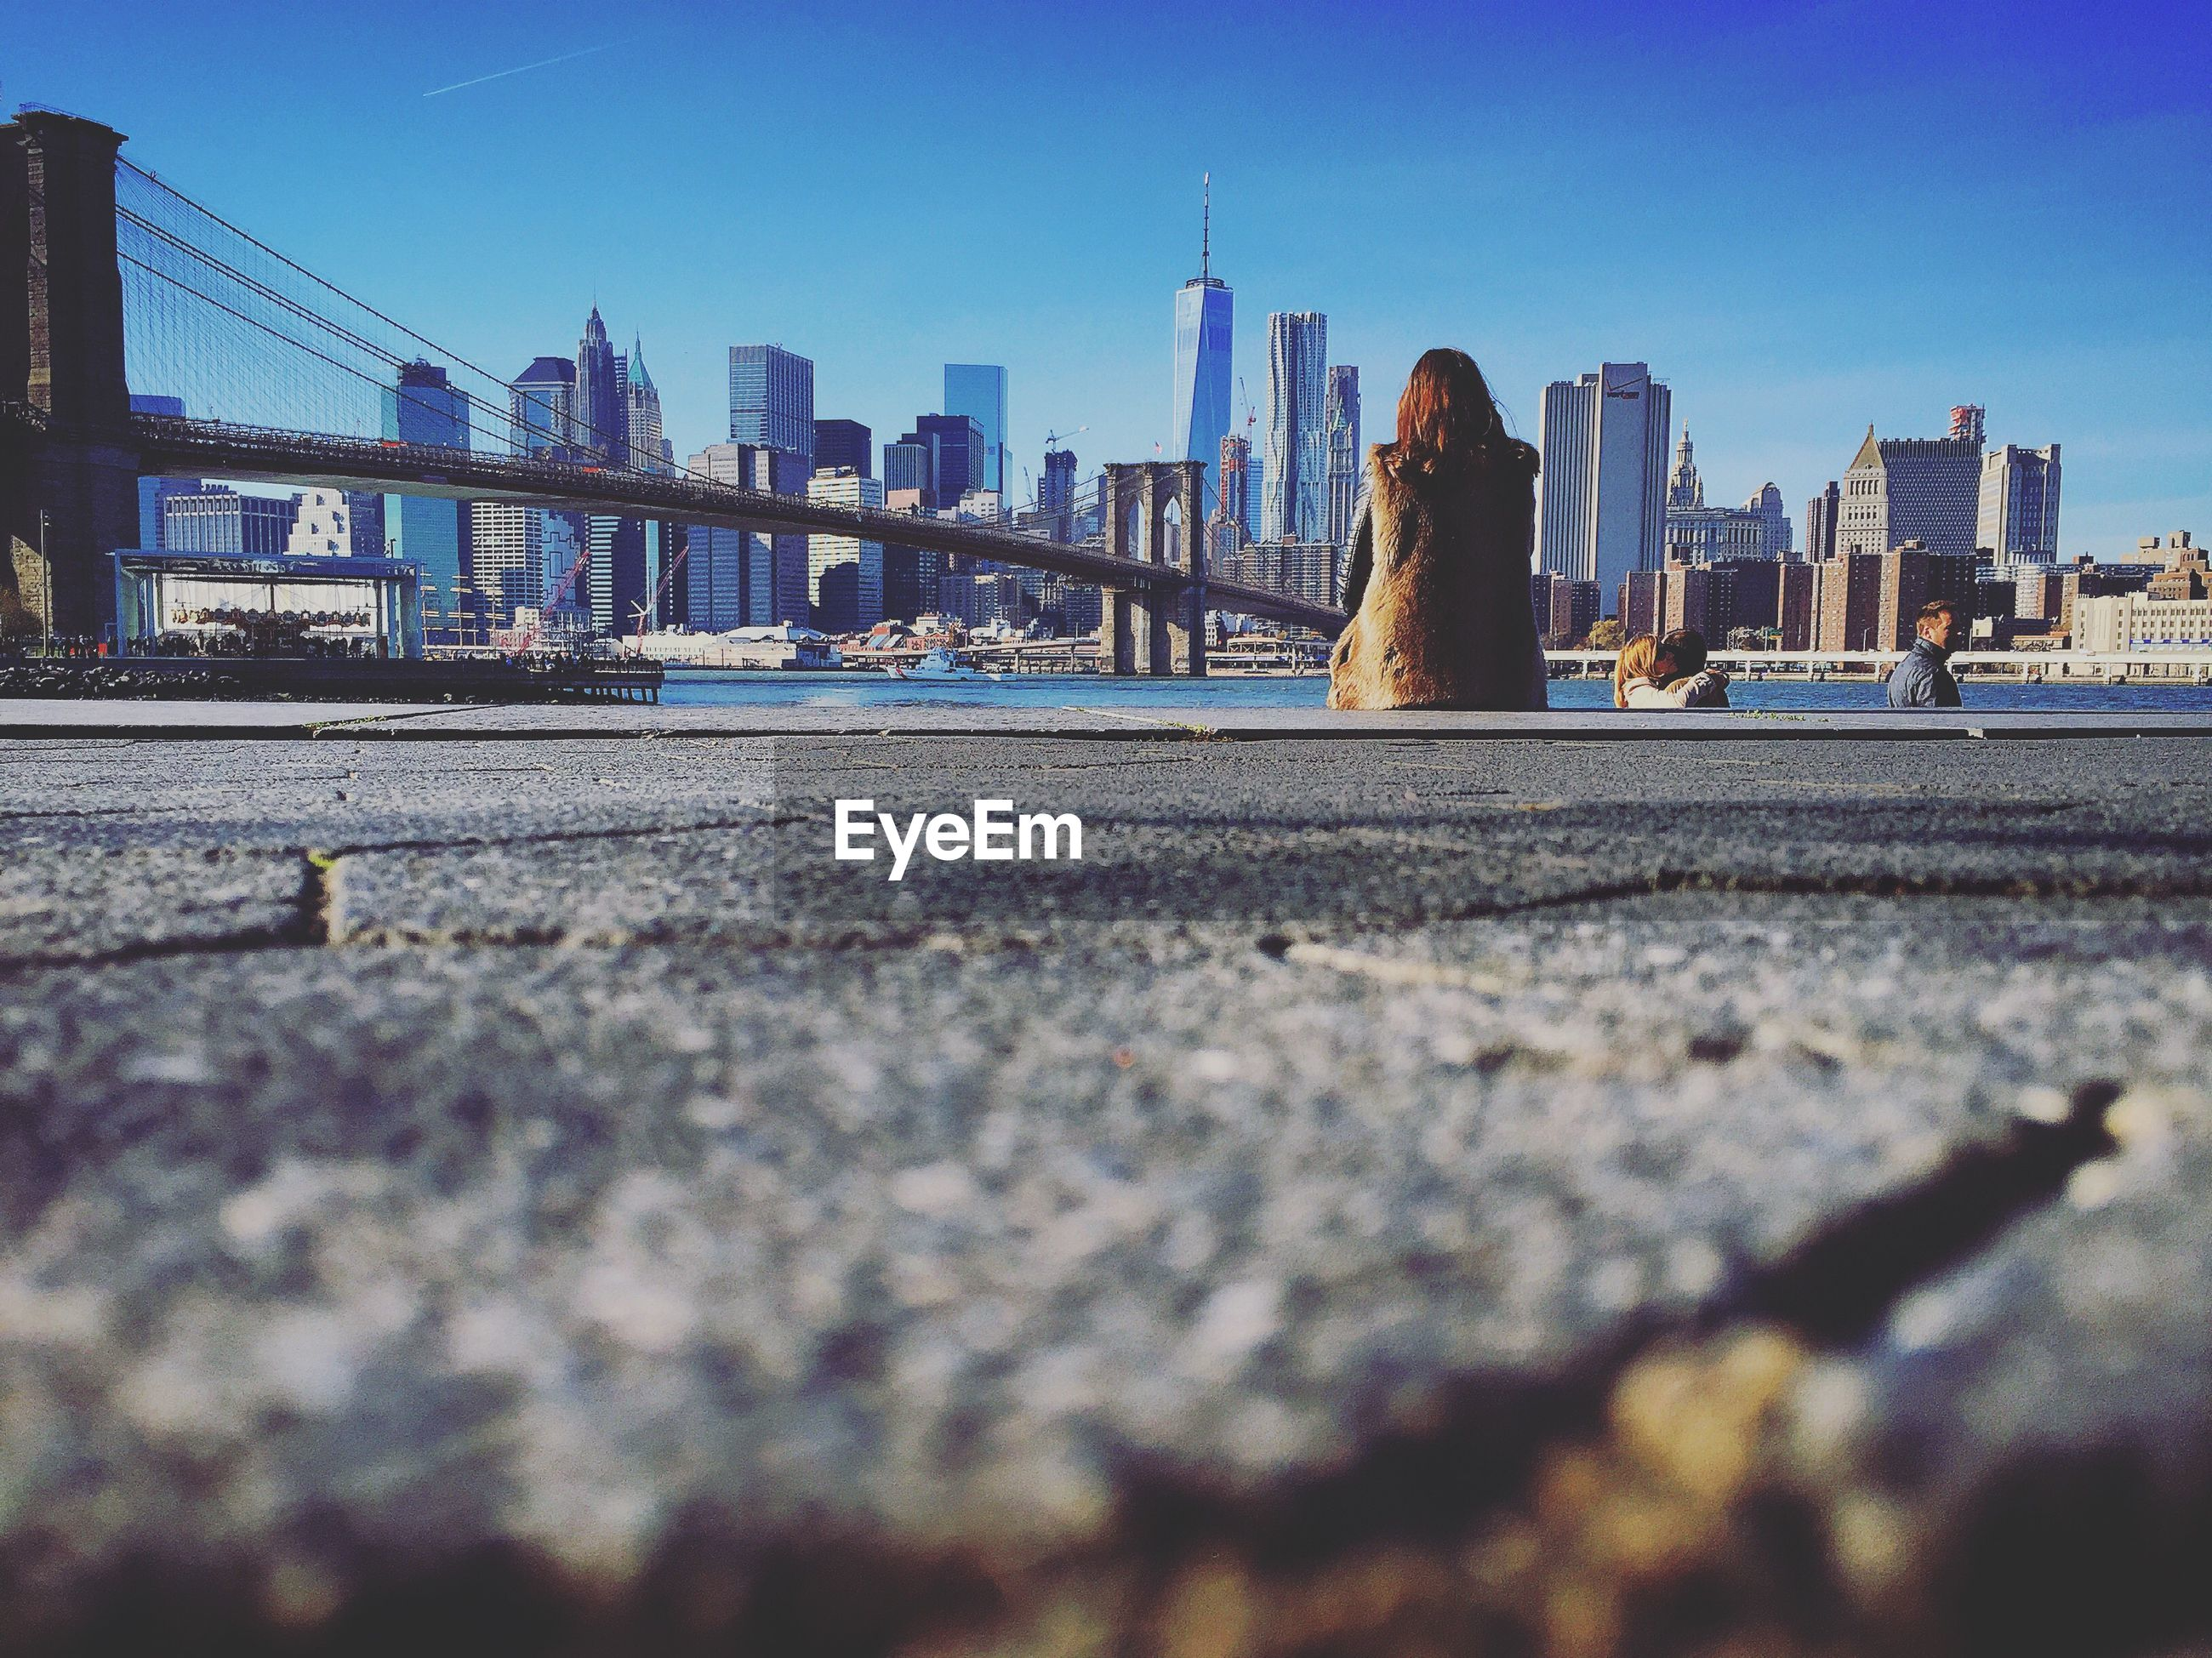 Rear view of woman sitting by brooklyn bridge and city skyline against clear blue sky